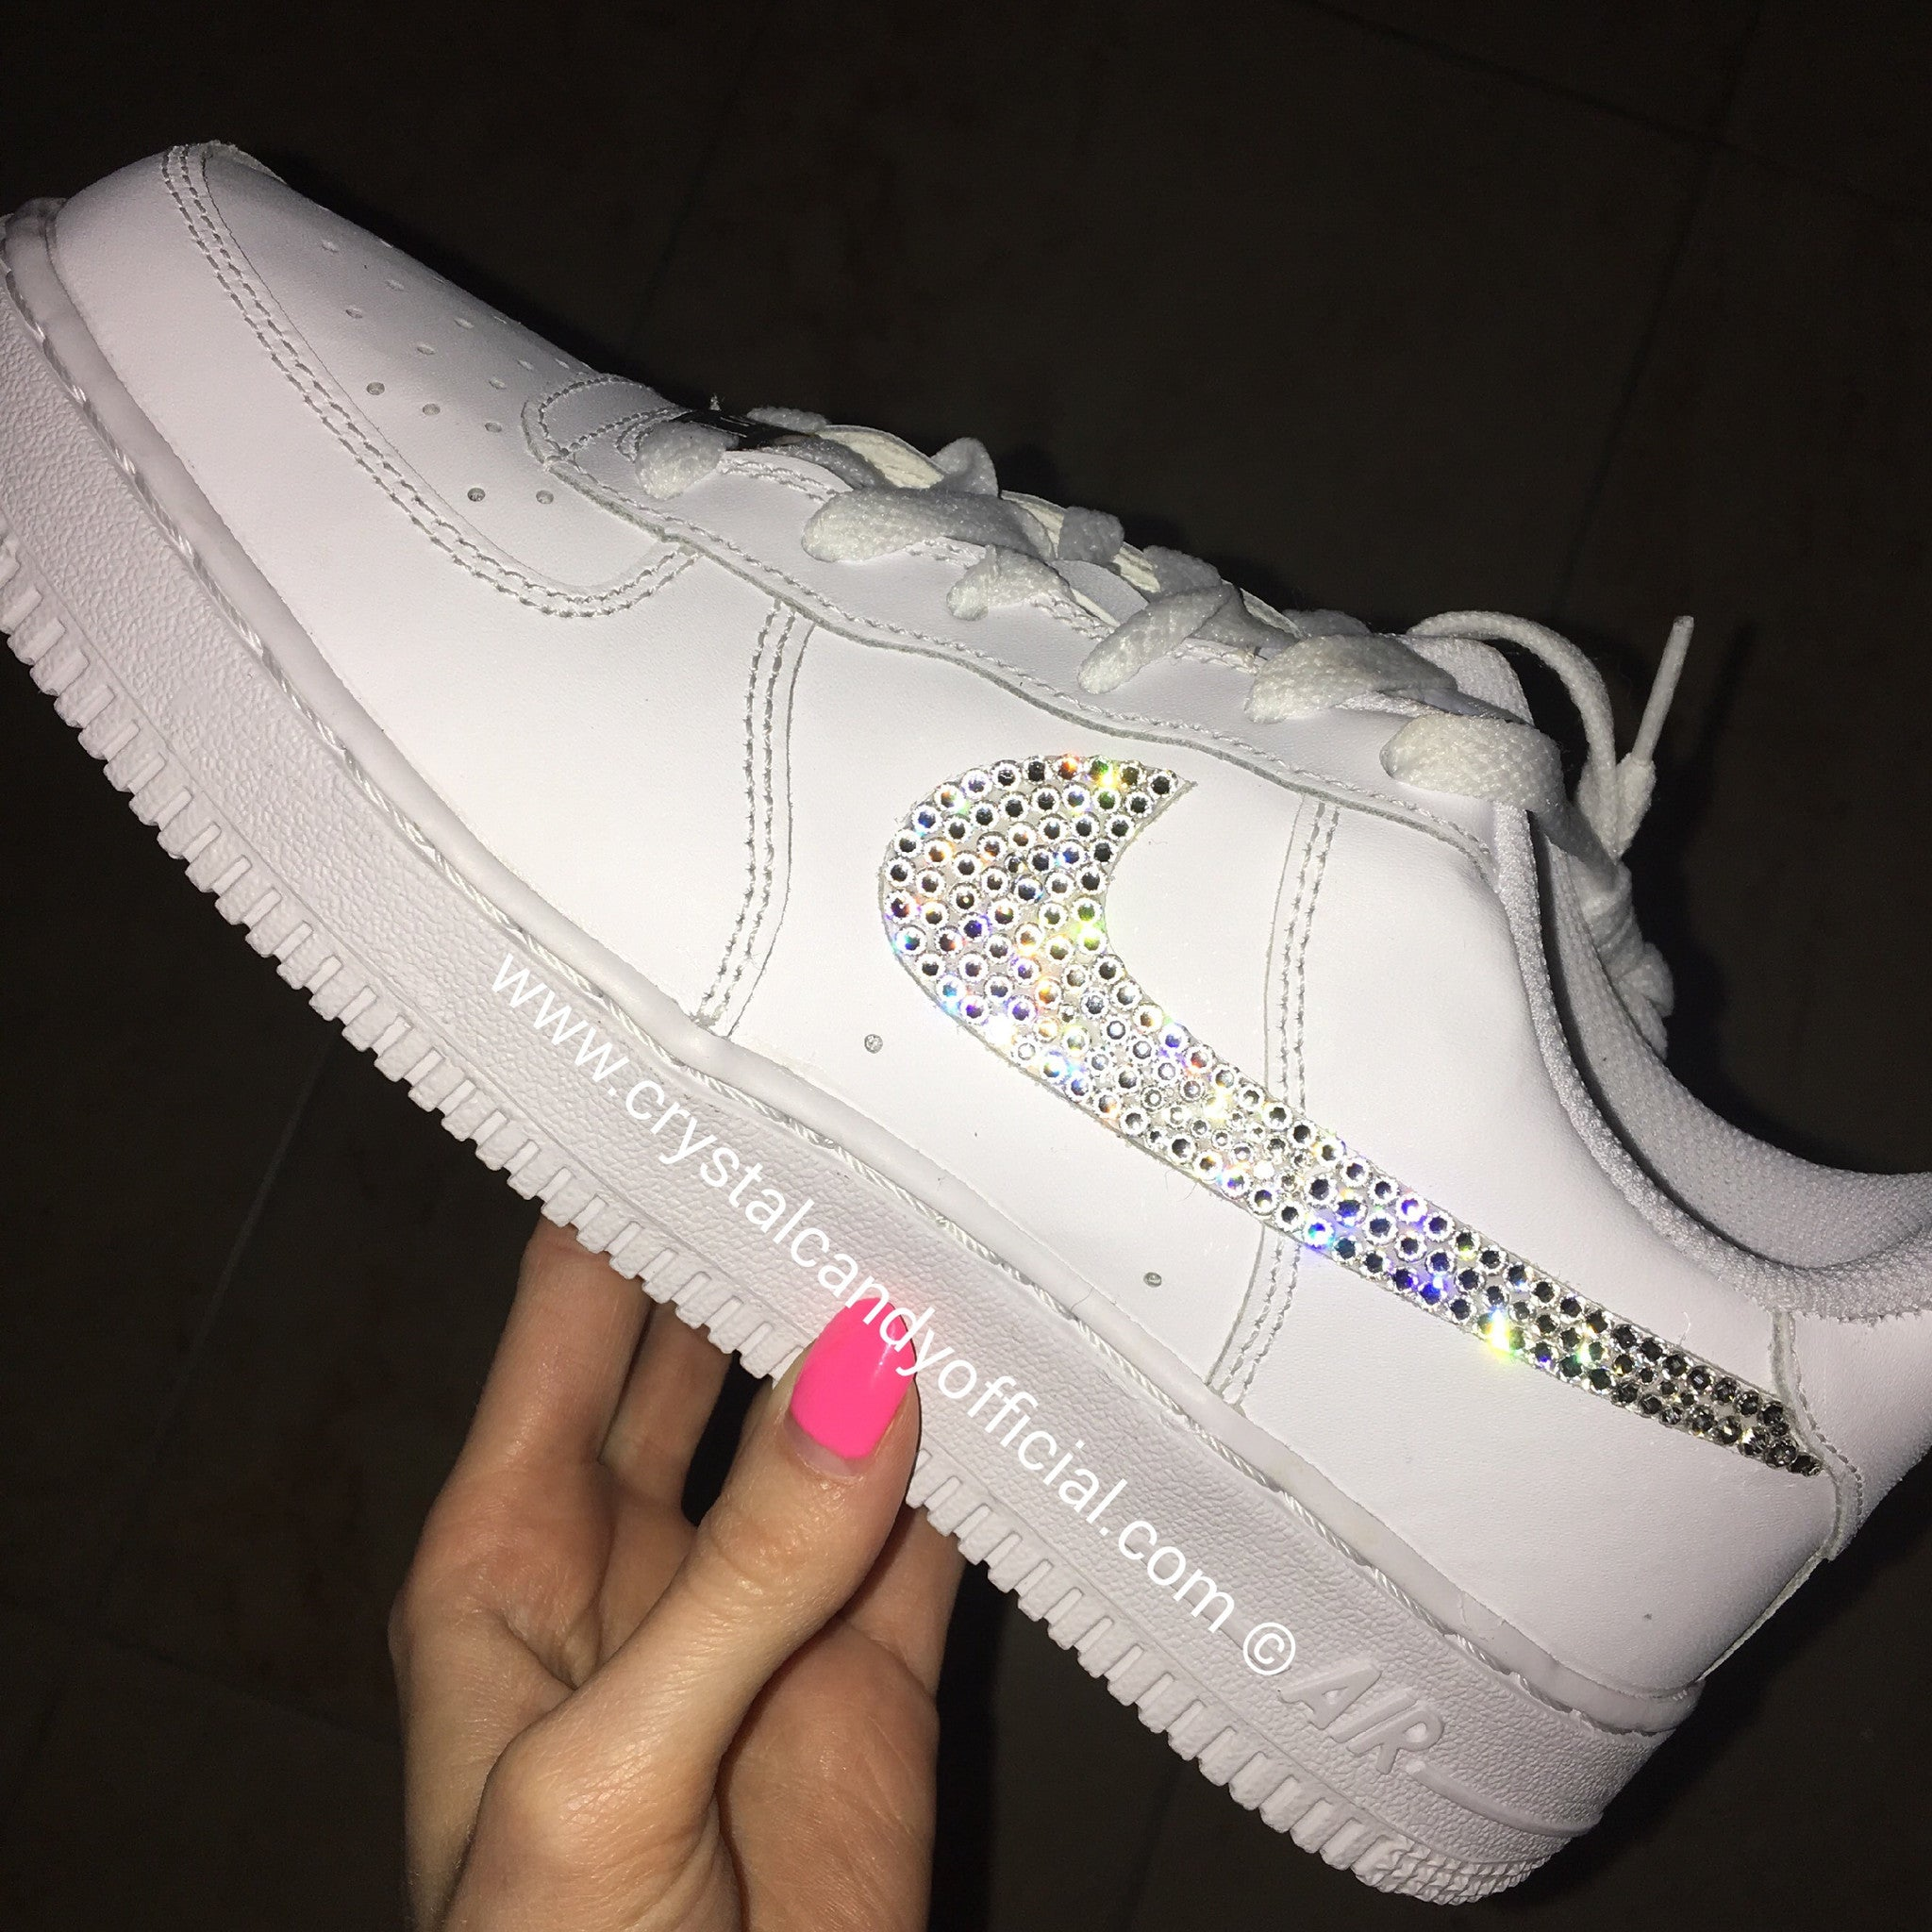 Crystal Nike Air Force 1 in White (Low) - Crystal Candy Limited 6a705f54eb